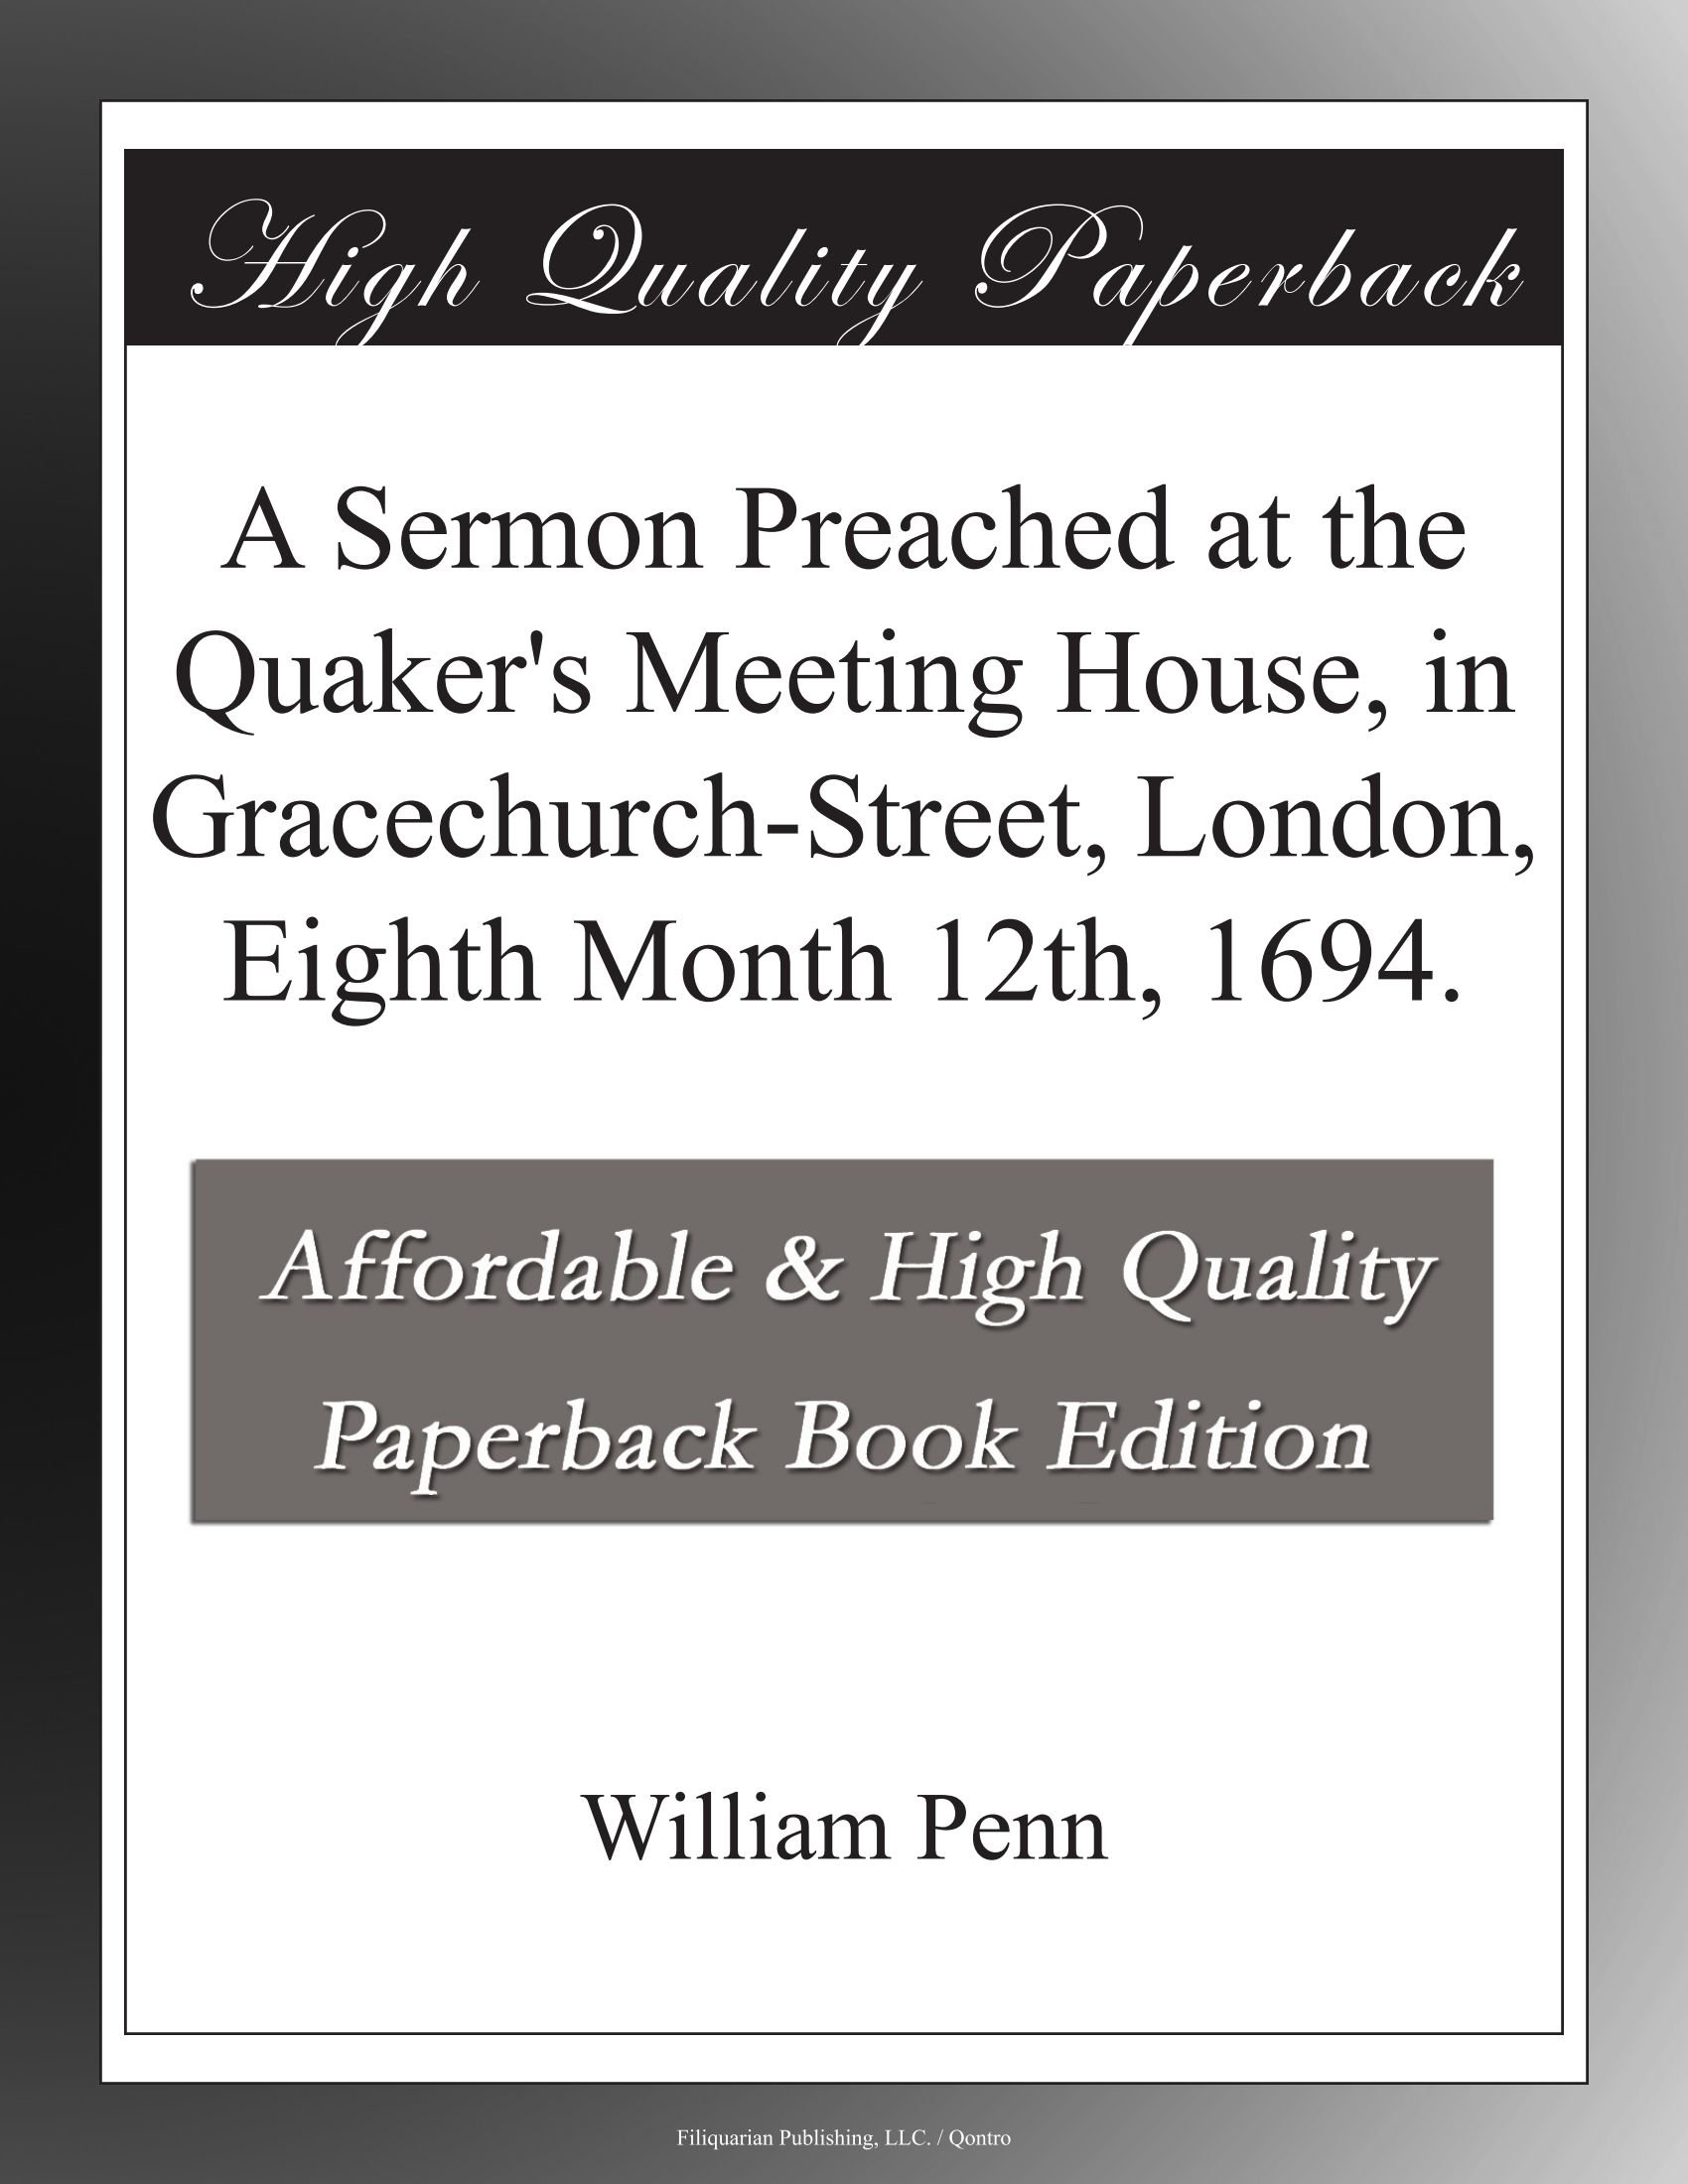 Download A Sermon Preached at the Quaker's Meeting House, in Gracechurch-Street, London, Eighth Month 12th, 1694. PDF